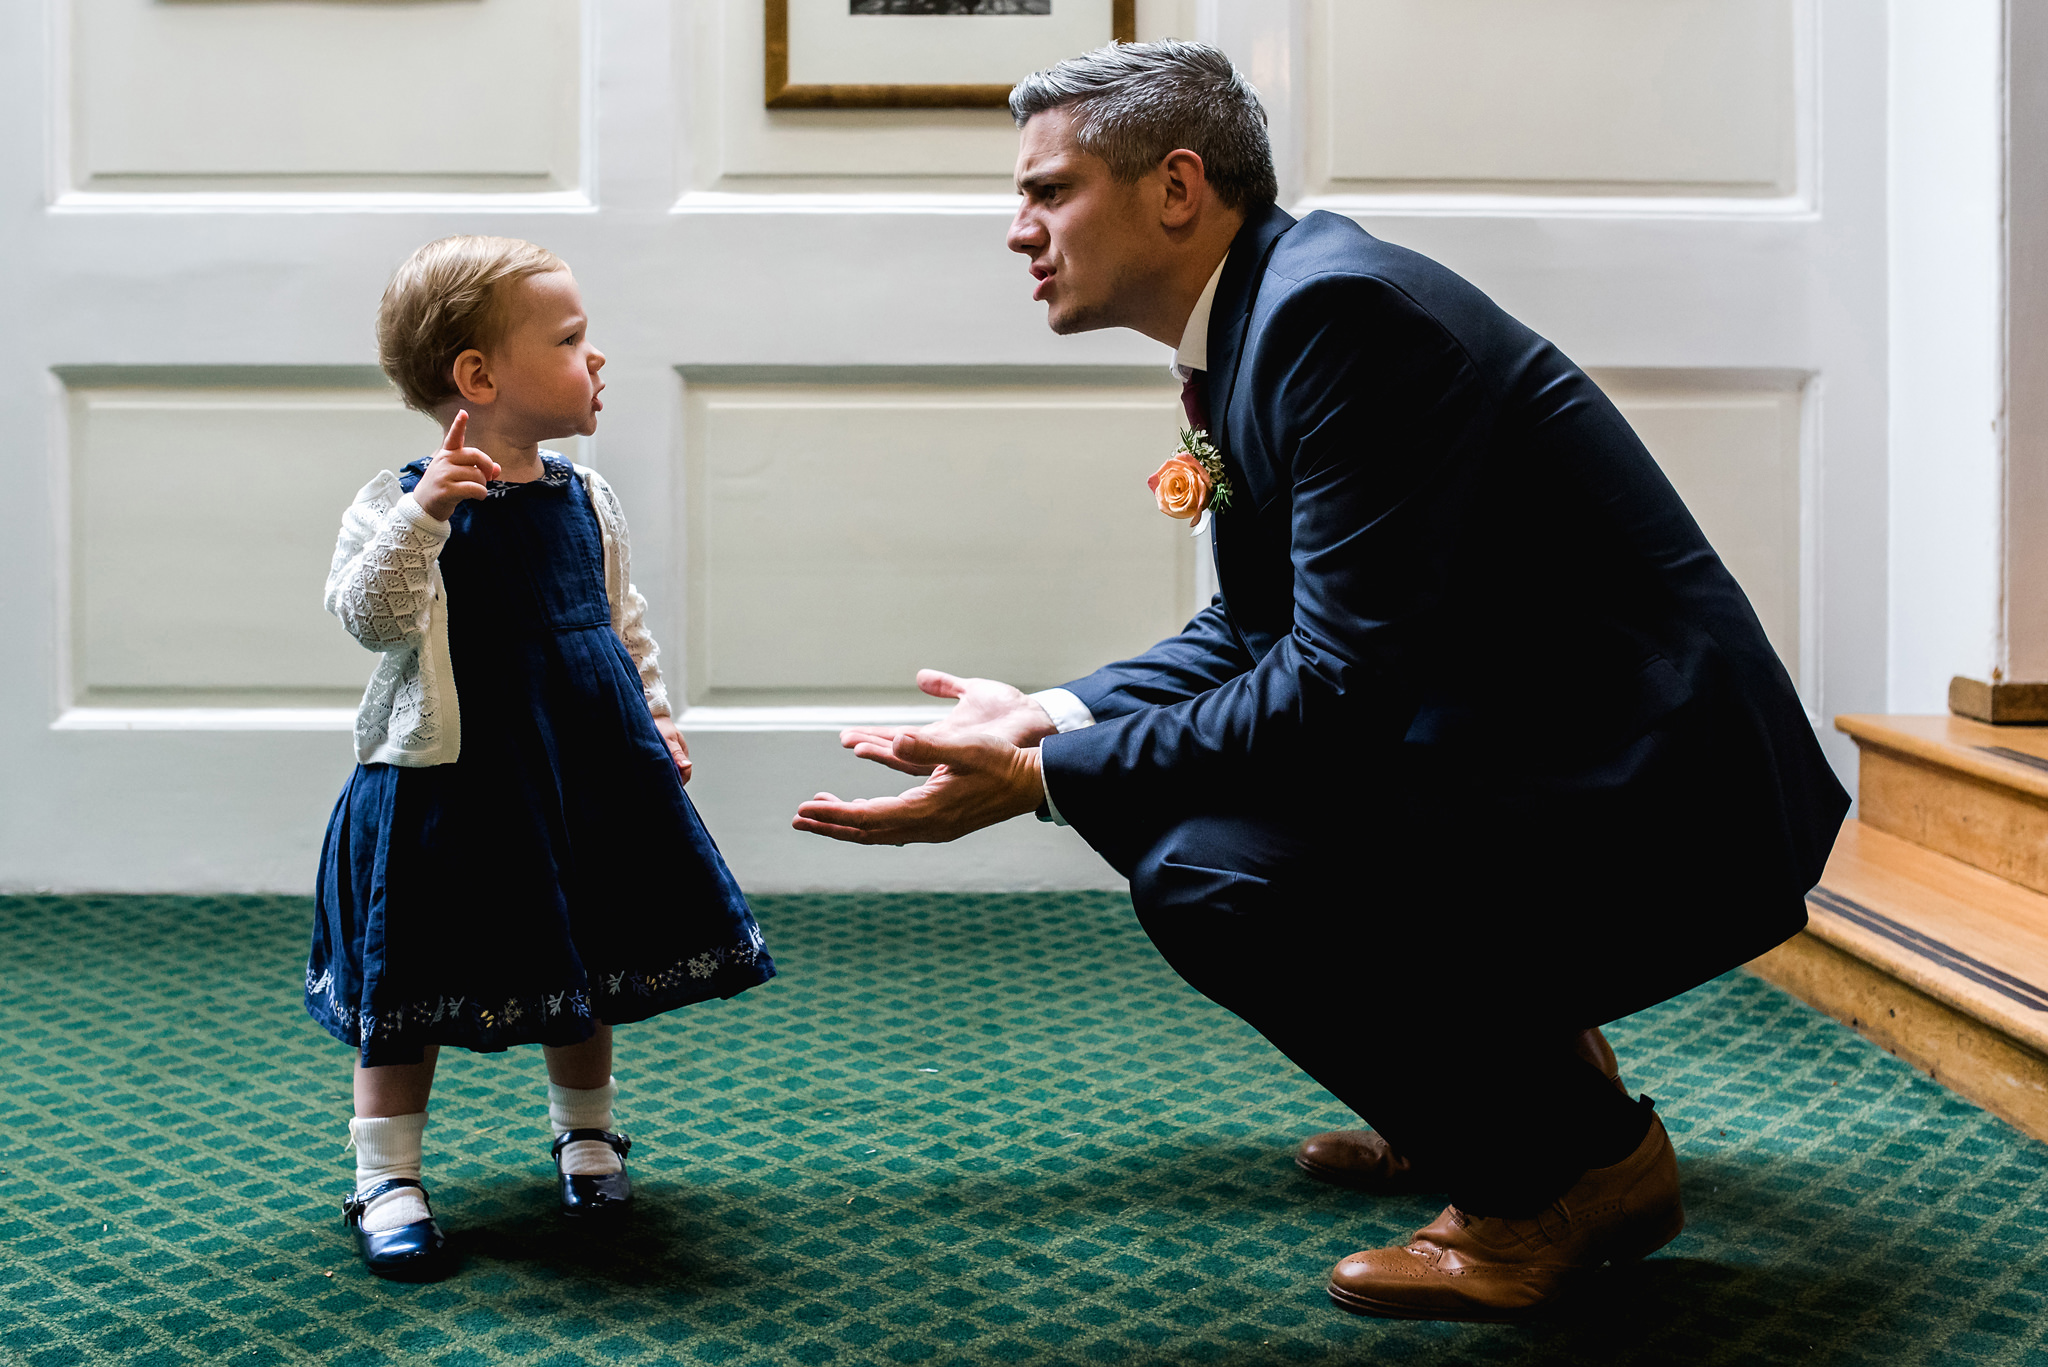 Daddy debates with toddler - photo by Rich Howman